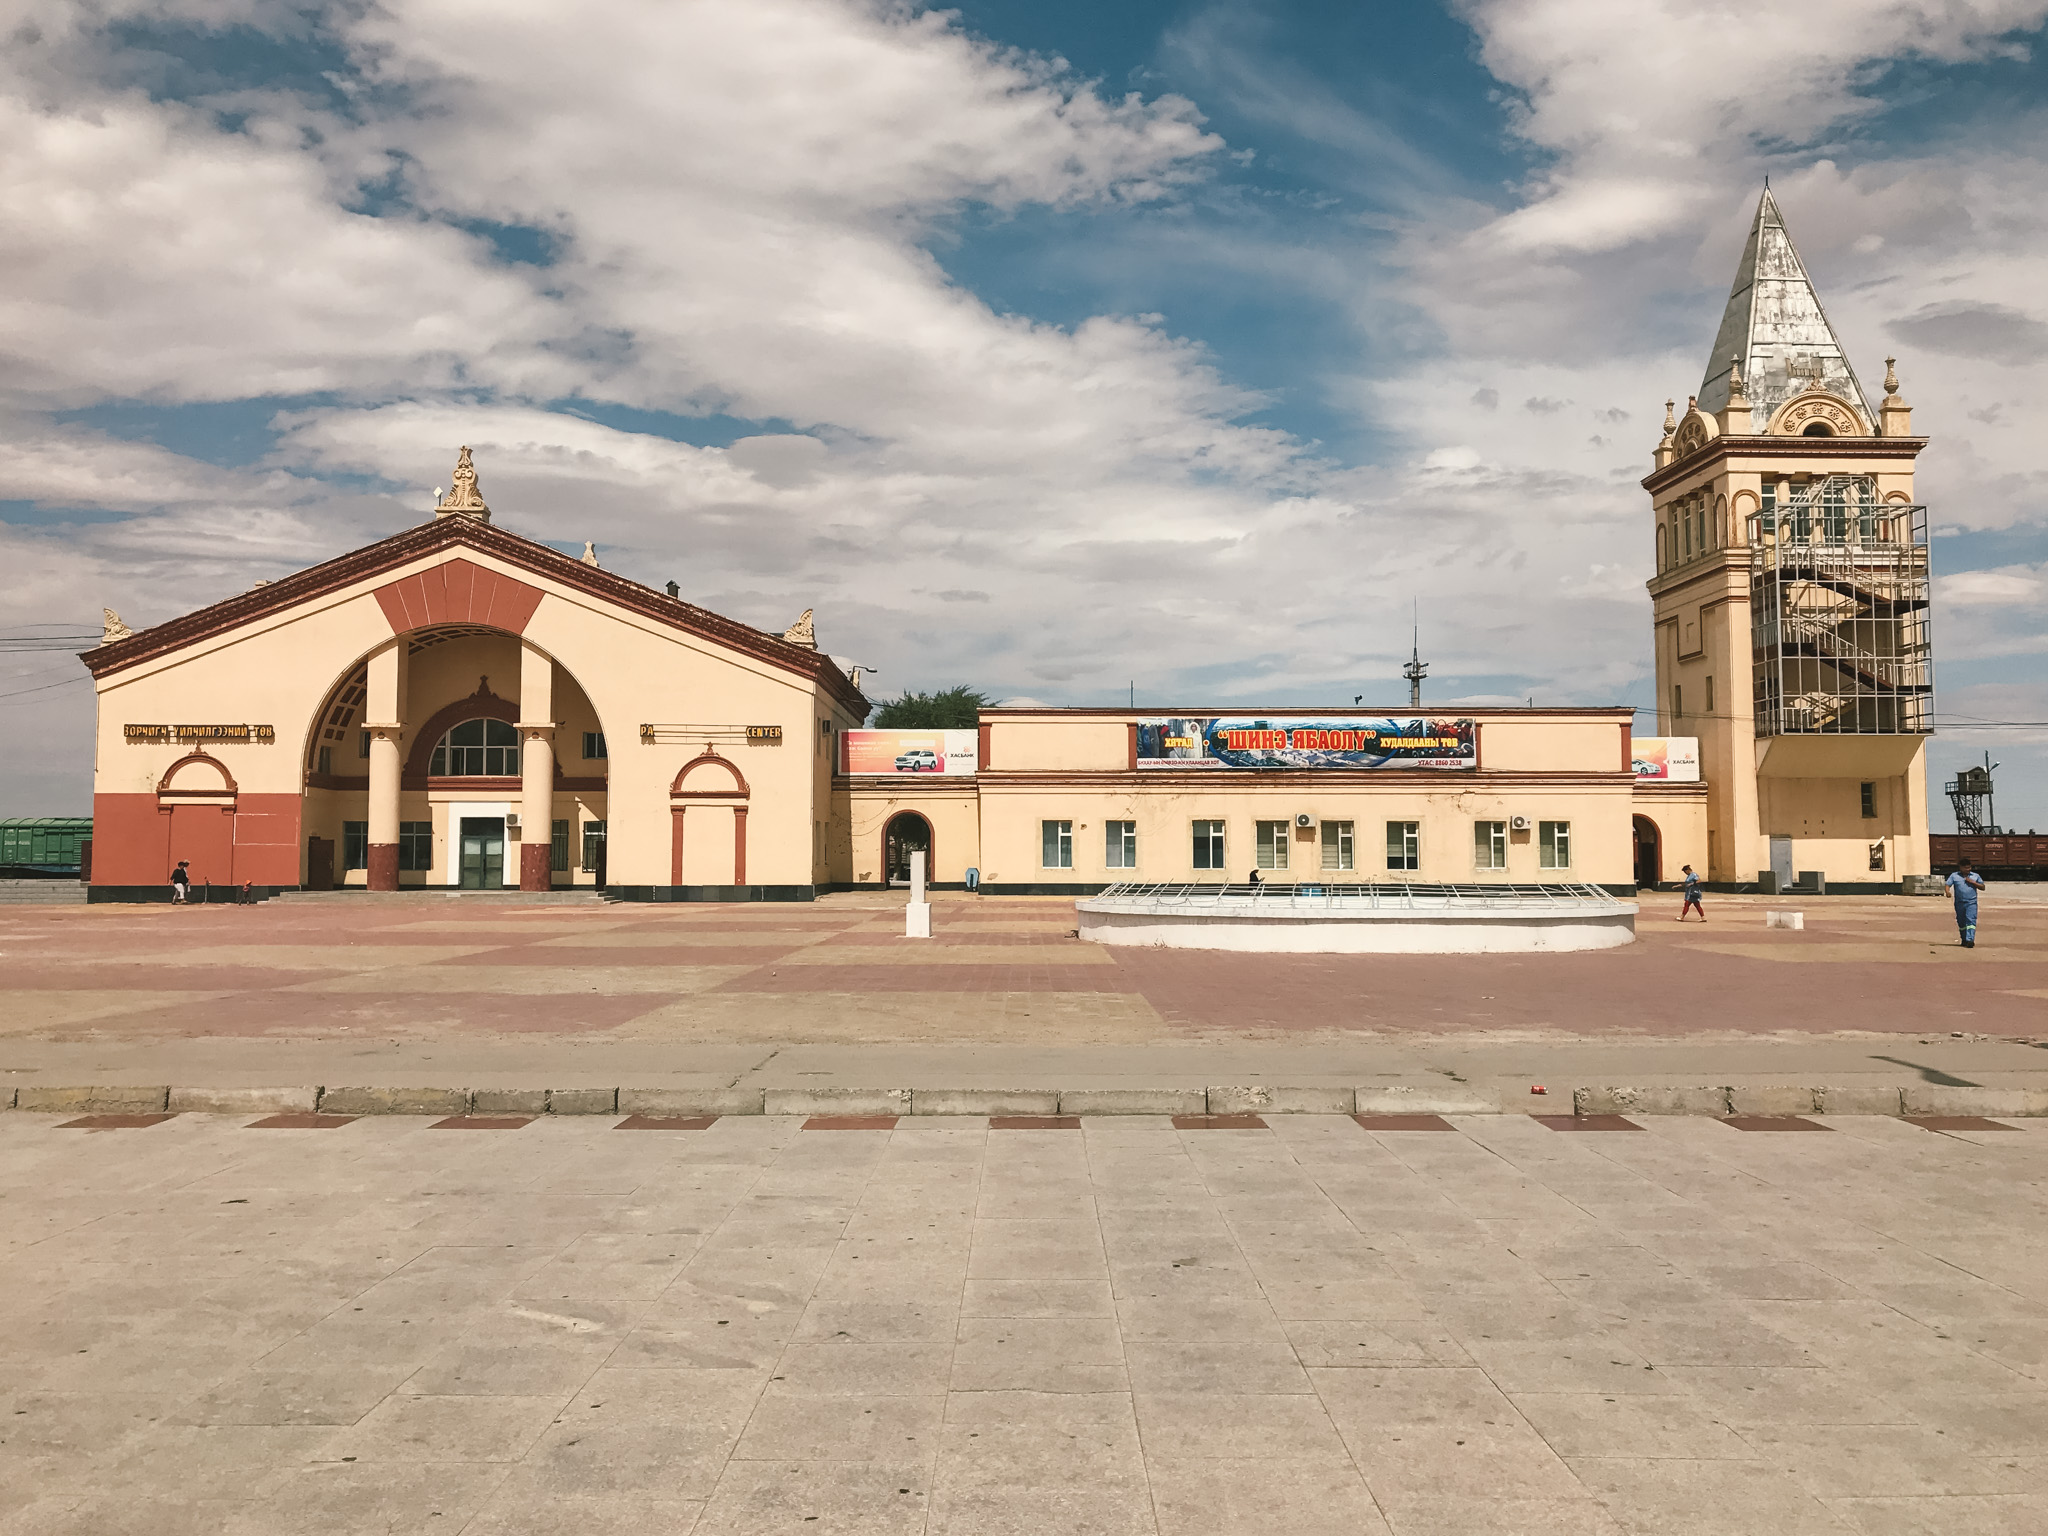 Zamyn-Uud train station